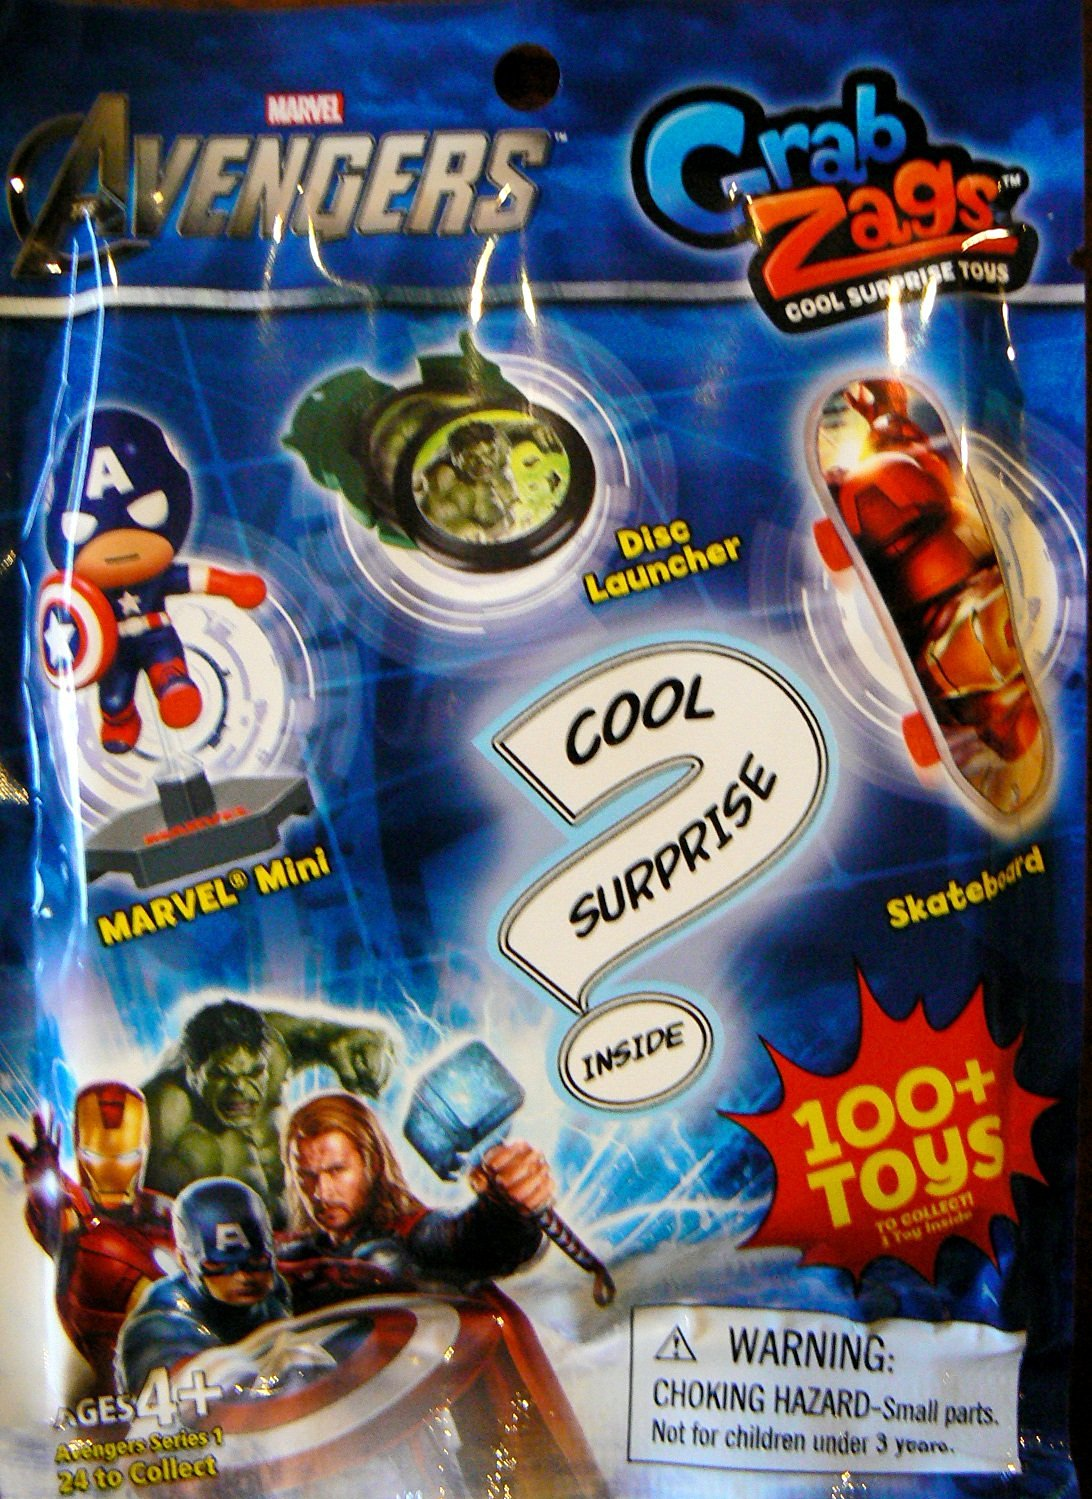 Marvel Avengers Grab Zags (1) Random Pack. Each pack contains (1) surprise toy. It will be either a Skateboard, Disc Launcher, or Mini Figure.